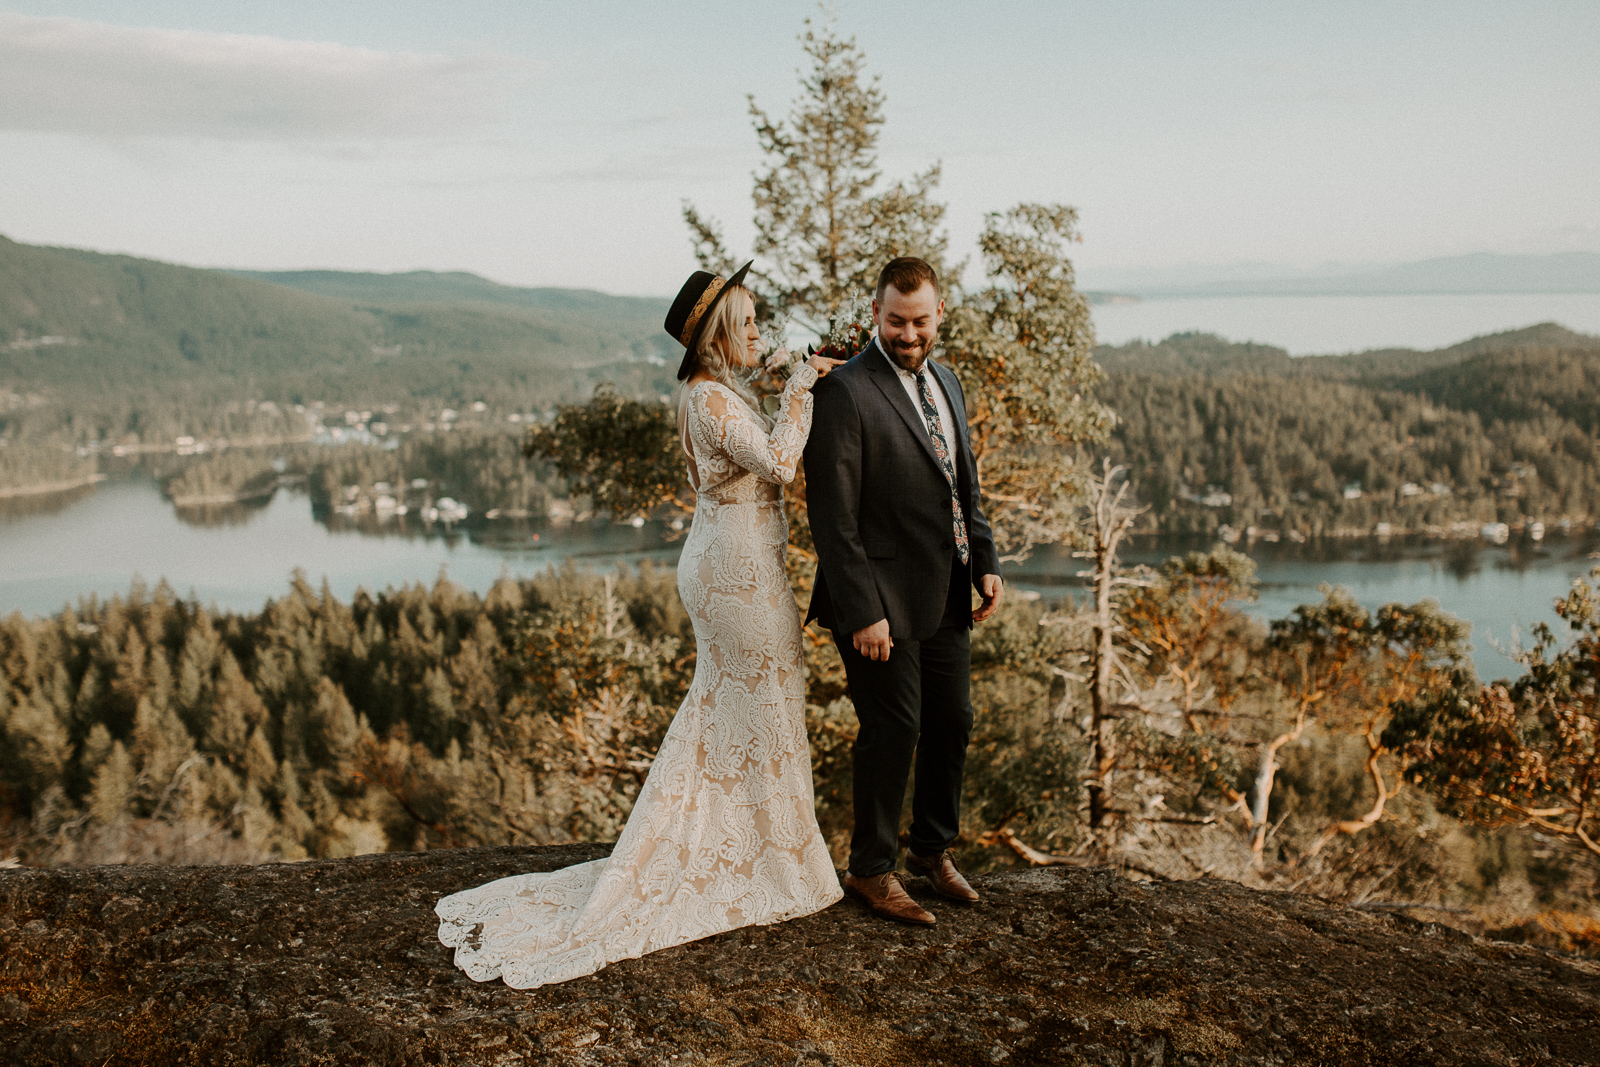 Luke Lambertson Photo_BritishColumbia_Canada_AdventurousCouple_Elopement_IMG-7897.jpg